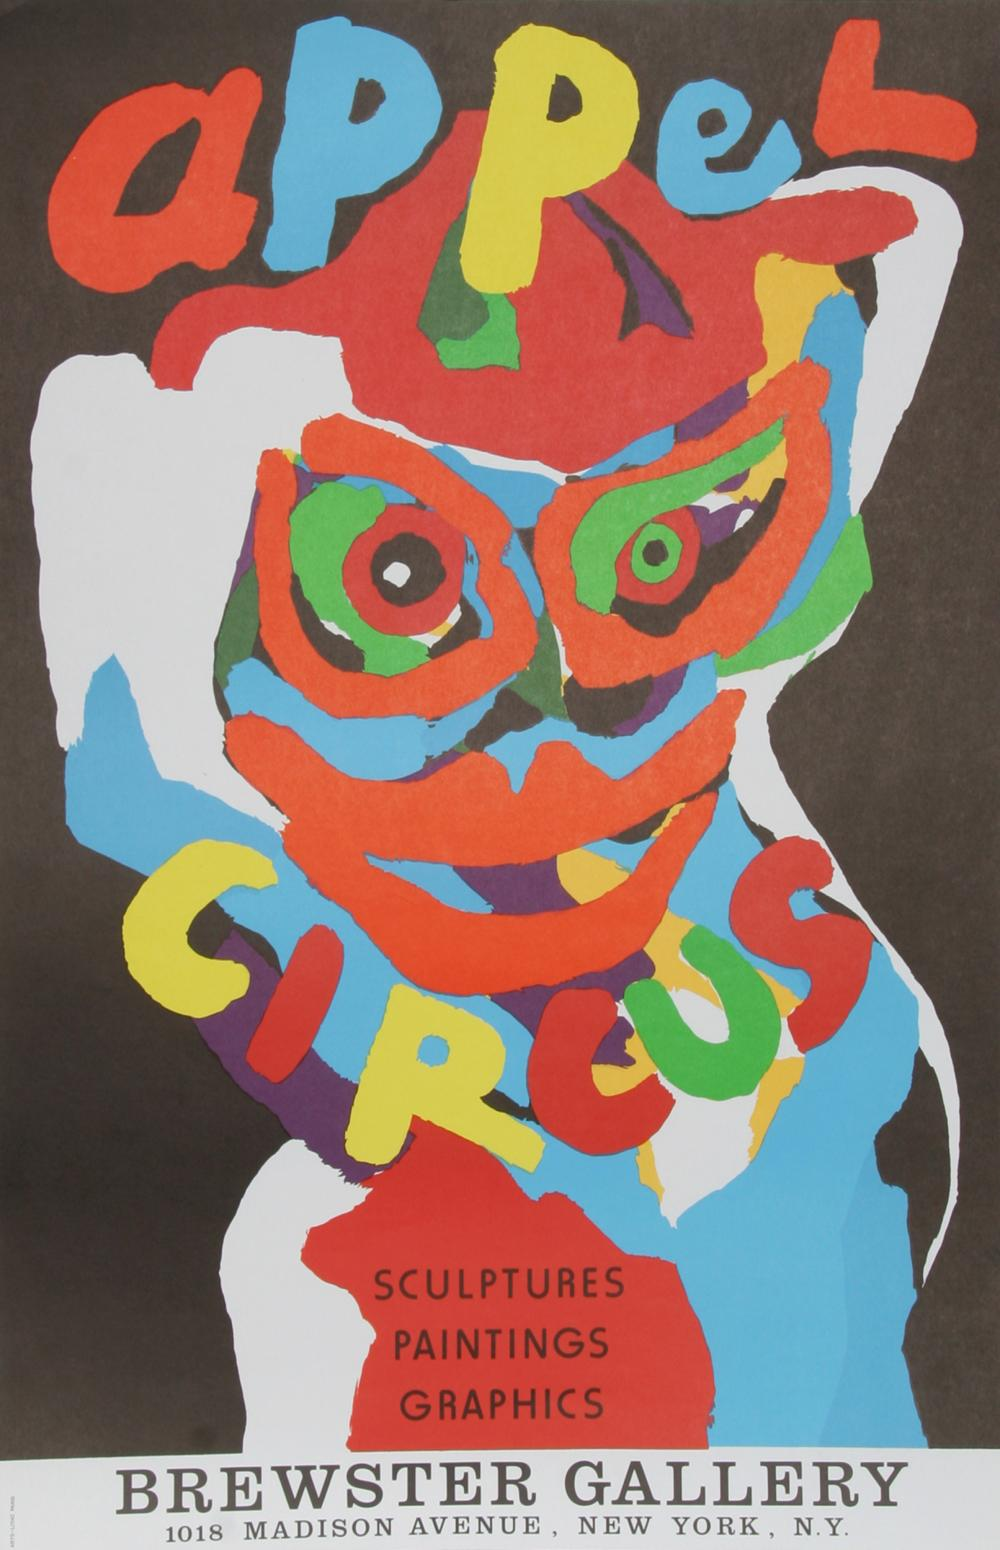 Karel Appel, Cirque at Brewster Gallery, Lithograph Poster